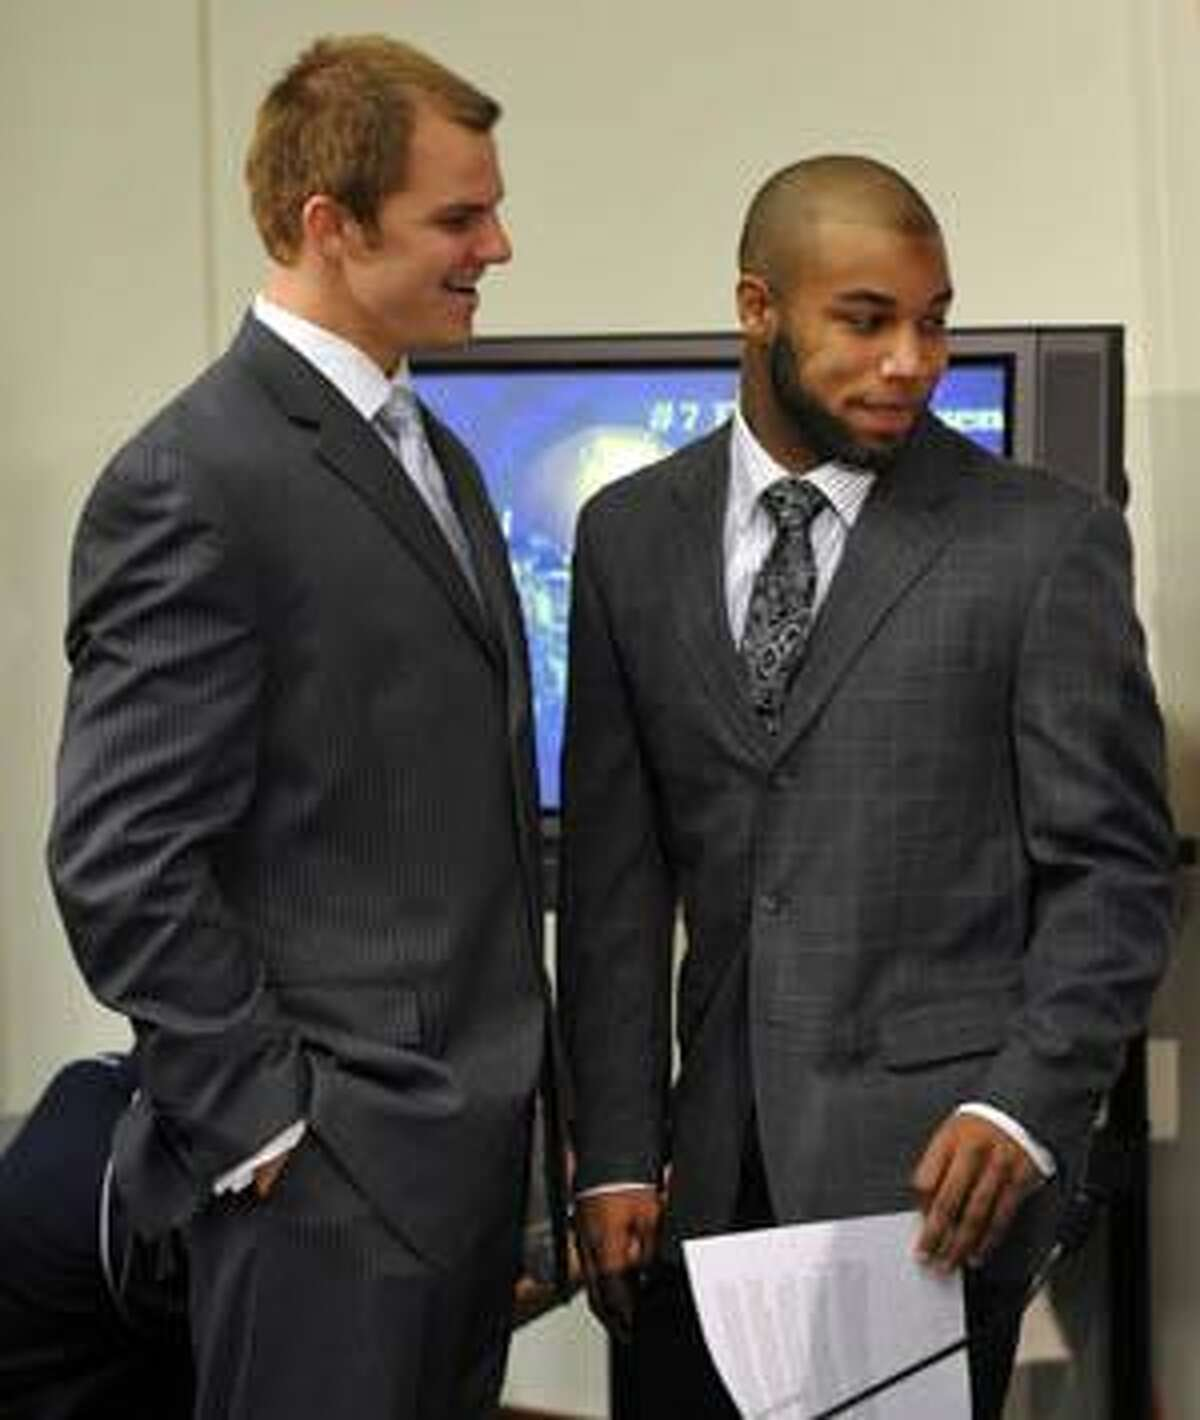 AP Notre Dame Jimmy Clausen talks to wide receiver Golden Tate at a Dec. 7 news conference in South Bend, Ind., where they announced they will bypass their senior seasons at Notre Dame and enter the NFL draft. There could be more undergraduate college players in the NFL draft than ever in 2010.